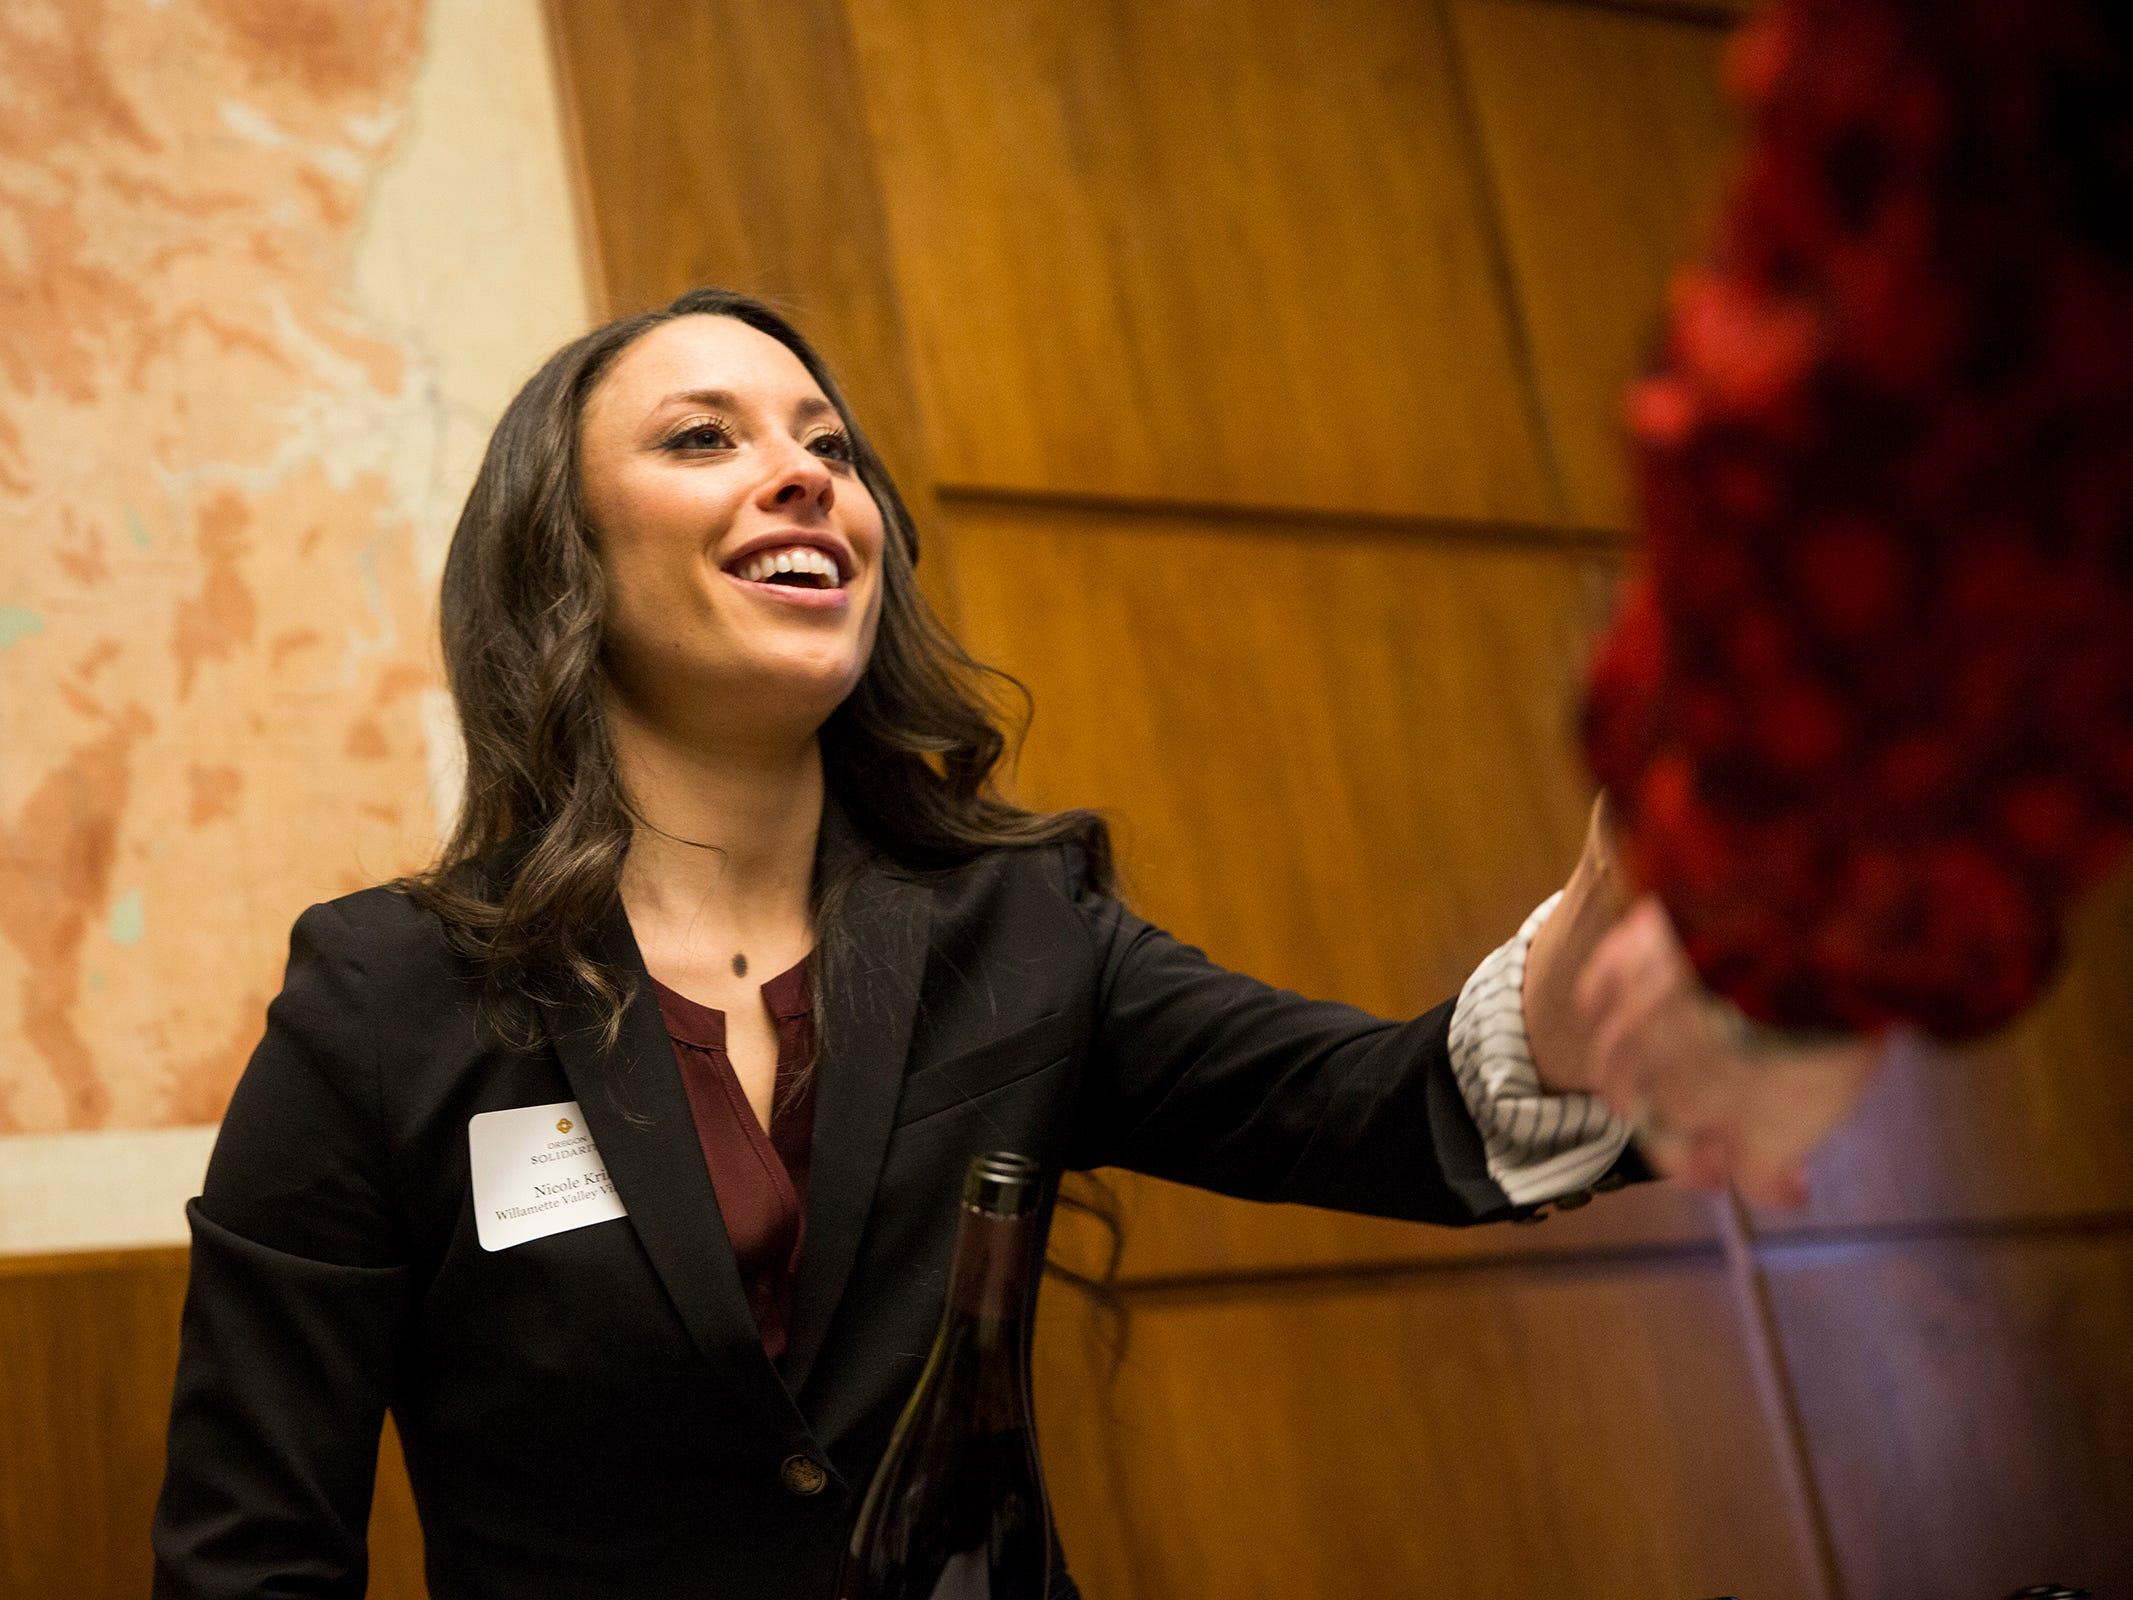 Nicole Krill, Willamette Valley Vineyards Brand Ambassador serves wine to guests at a release party for the Oregon Solidarity Rose of Pinot Noir in Gov. Kate Brown's ceremonial office at the Oregon State Capitol in Salem on Tuesday, March 5, 2019.